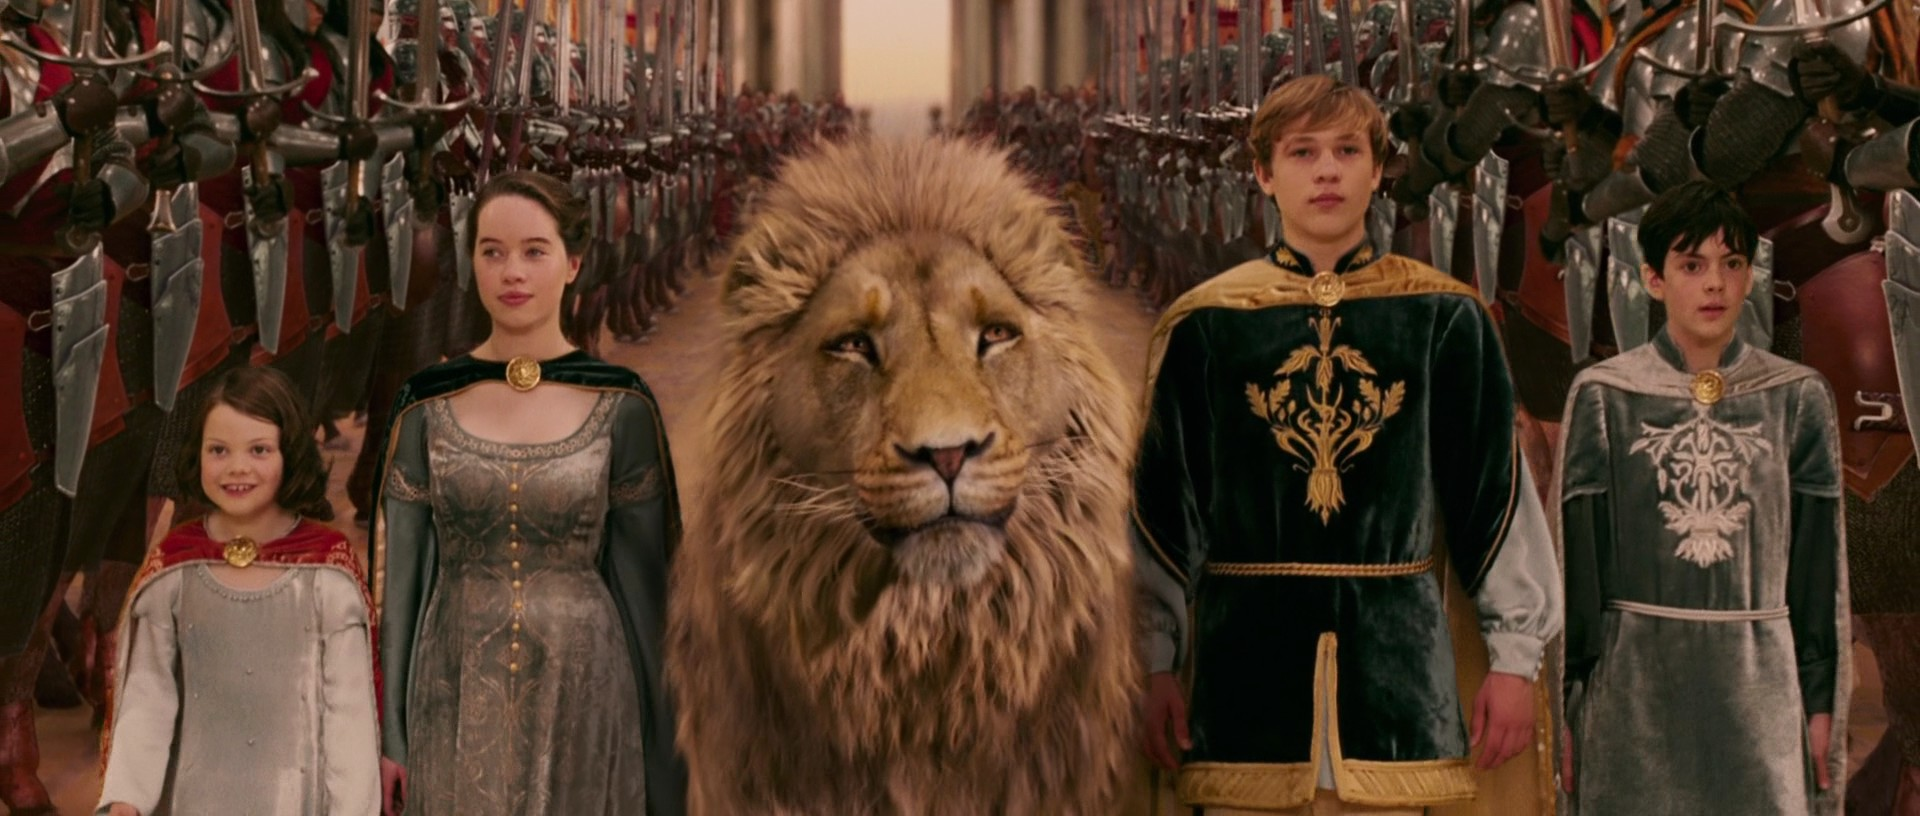 The Lion the Witch and the Wardrobe Chronicles of Narnia